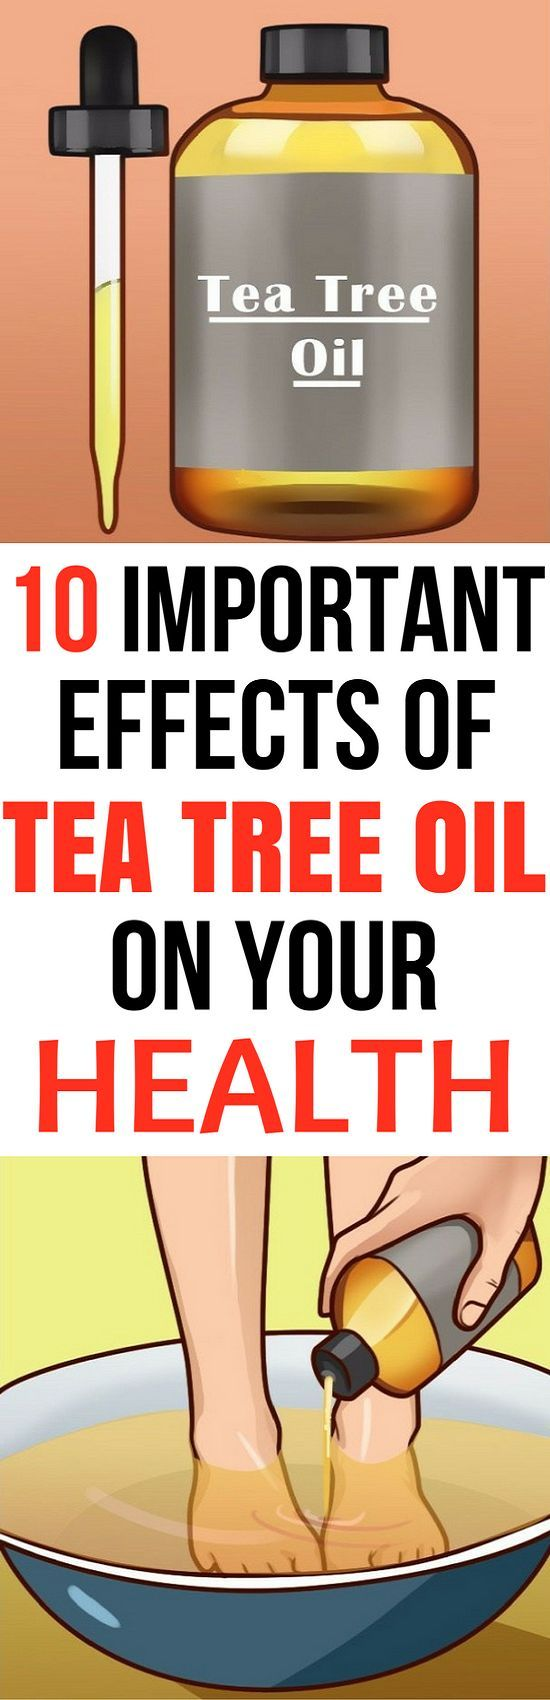 Tea tree oil, commonly known as melaleuca, is touted for its potent antiseptic properties and ability to treat wounds and minor injuries. It is obtained from Melaleuca alternifolia, an Australian native plant which has been long used across Australia for various purposes.